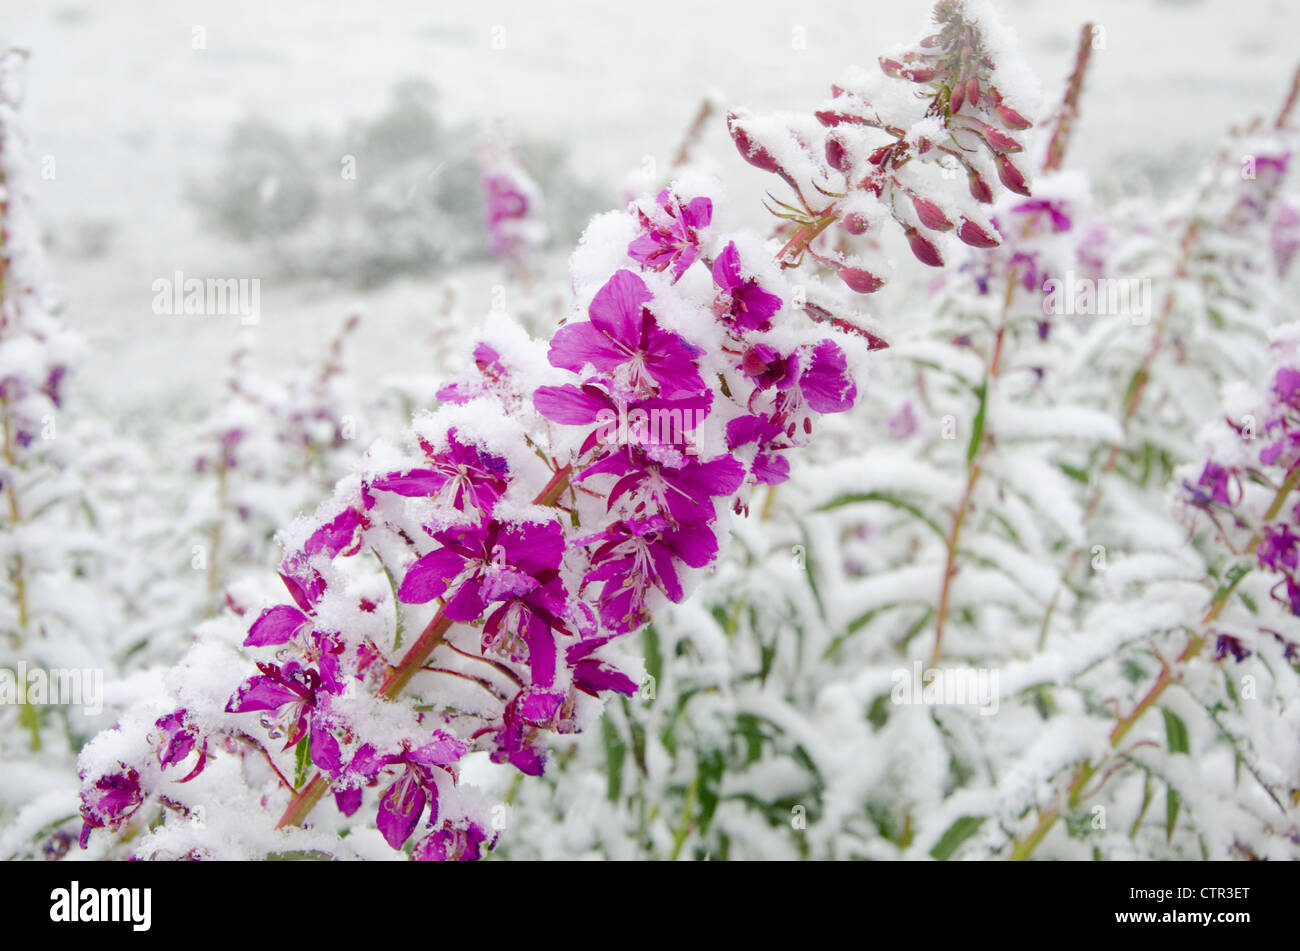 Fireweed flowers covered by late summer snowstorm, Sable Pass, Denali National Park & Preserve, Interior Alaska - Stock Image